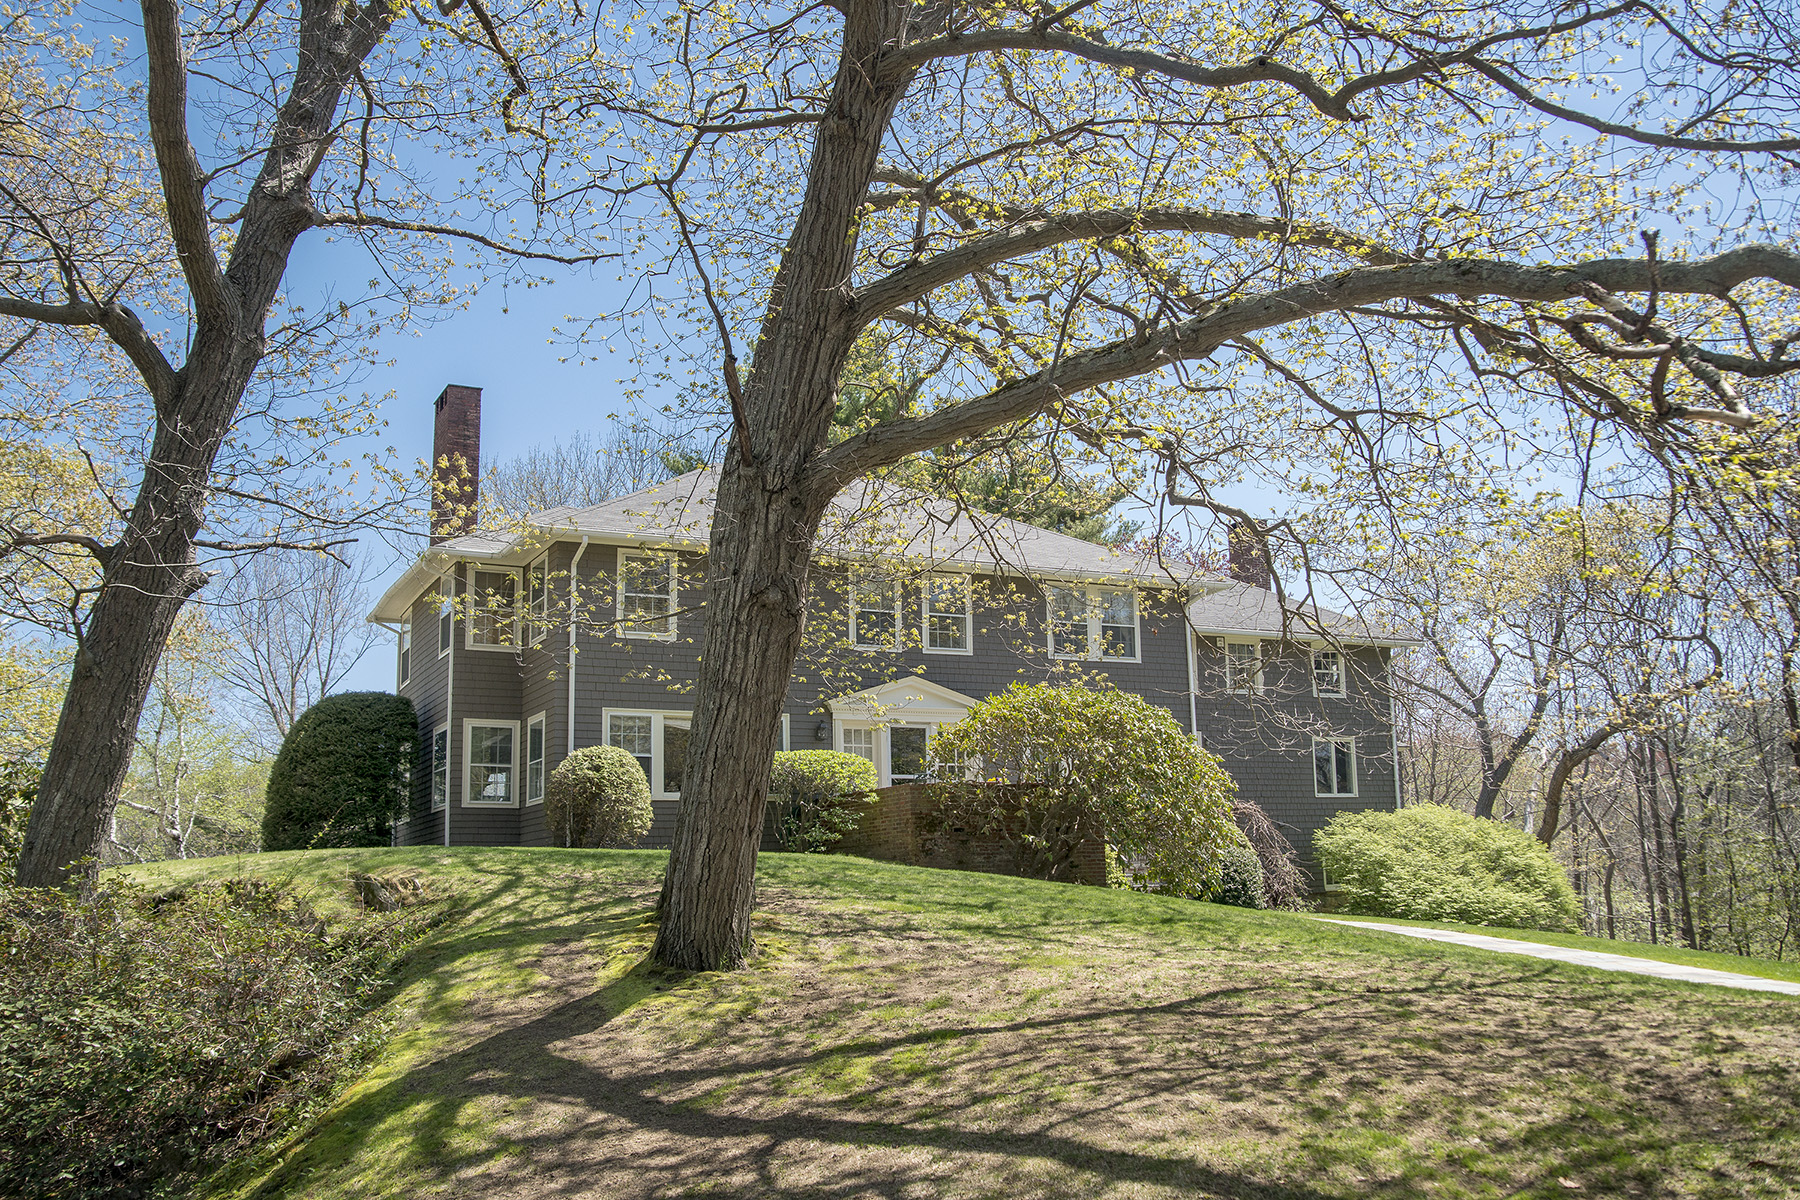 Single Family Home for Sale at 997 & 999 Shore Road 997 & 999 Shore Rd Cape Elizabeth, Maine 04107 United States